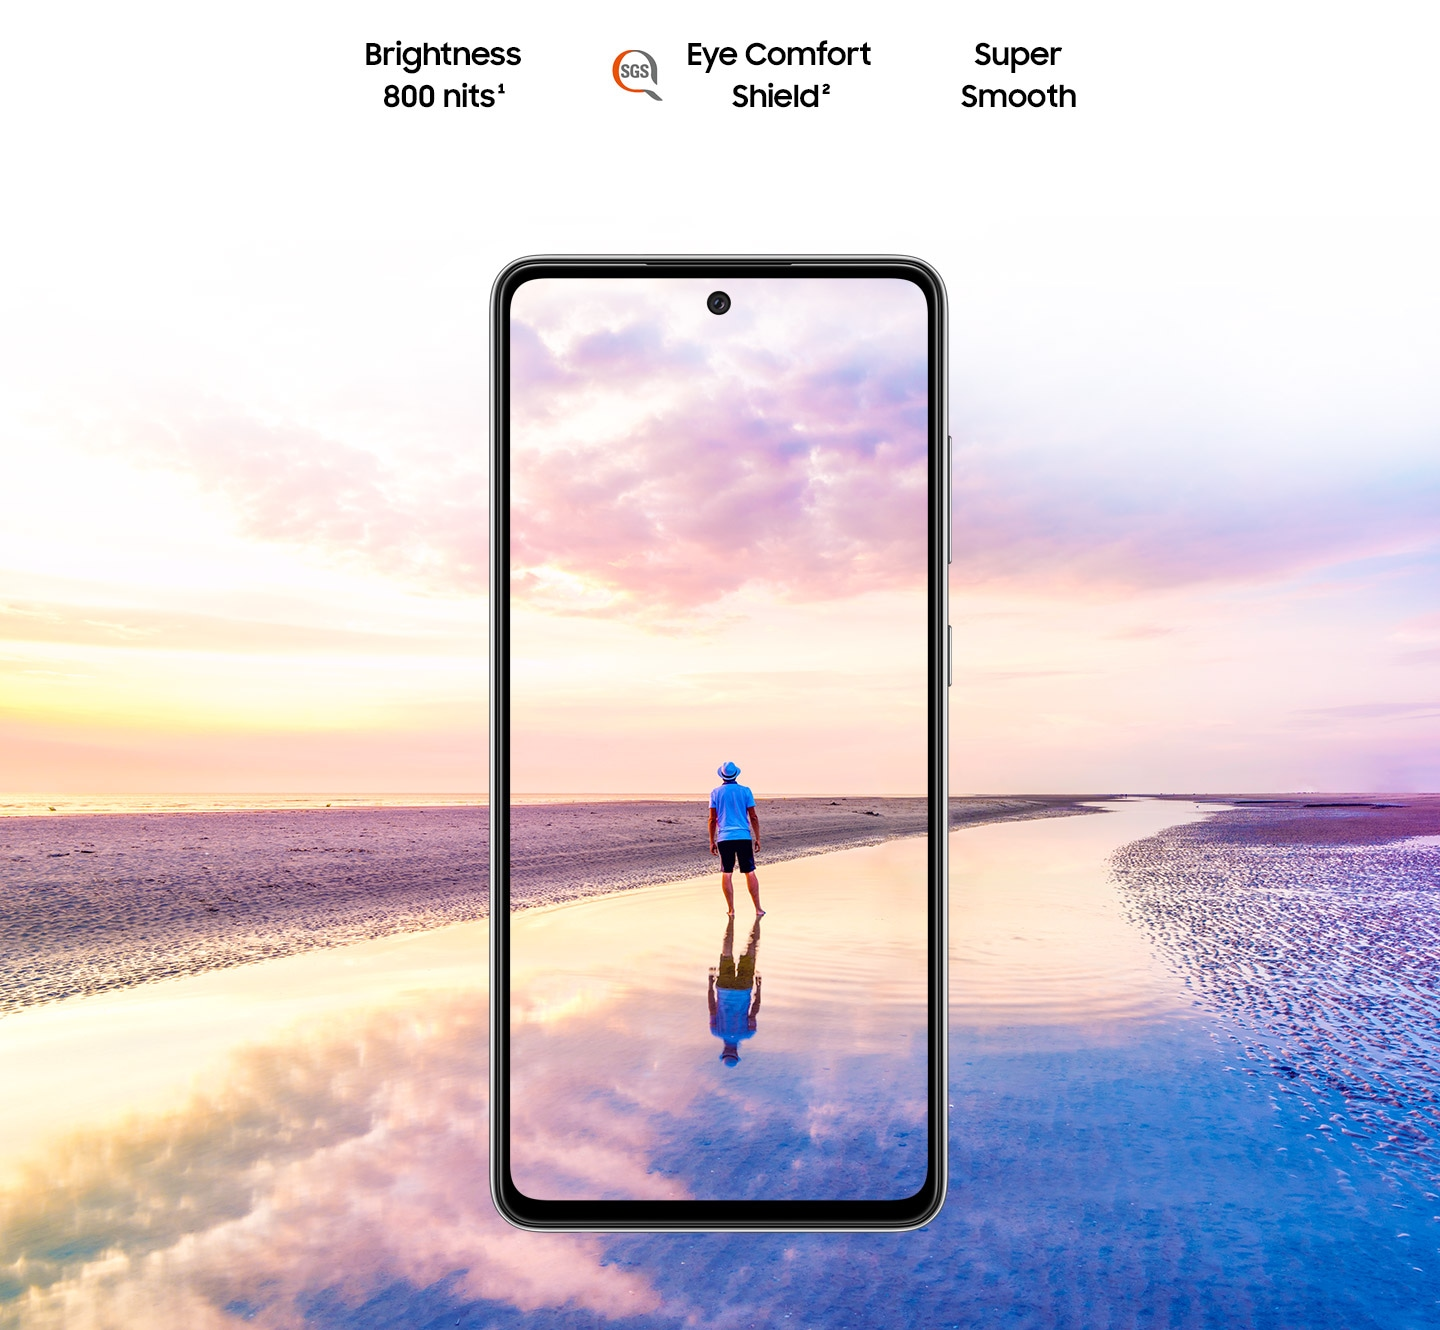 Galaxy A52 5G seen from the front. A scene of a man standing on a beach at sunset with pink and blue colors in the sky expands outside of the boundaries of the display. Text says Super Smooth, Brightness 800 nits and Eye Comfort Shield, with the SGS logo.